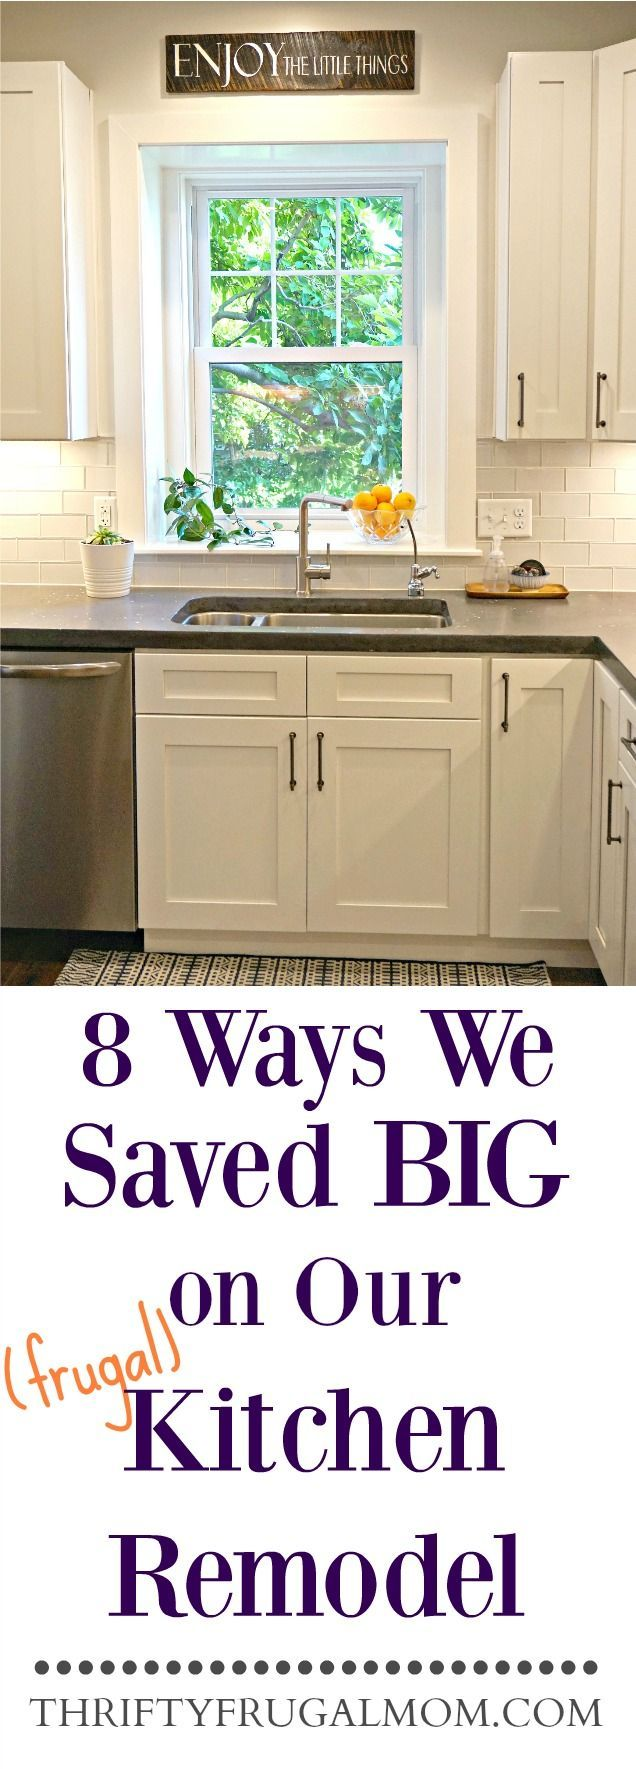 Planning A Frugal Kitchen Remodel? Here Are 8 Easy Ways That We Saved Big On